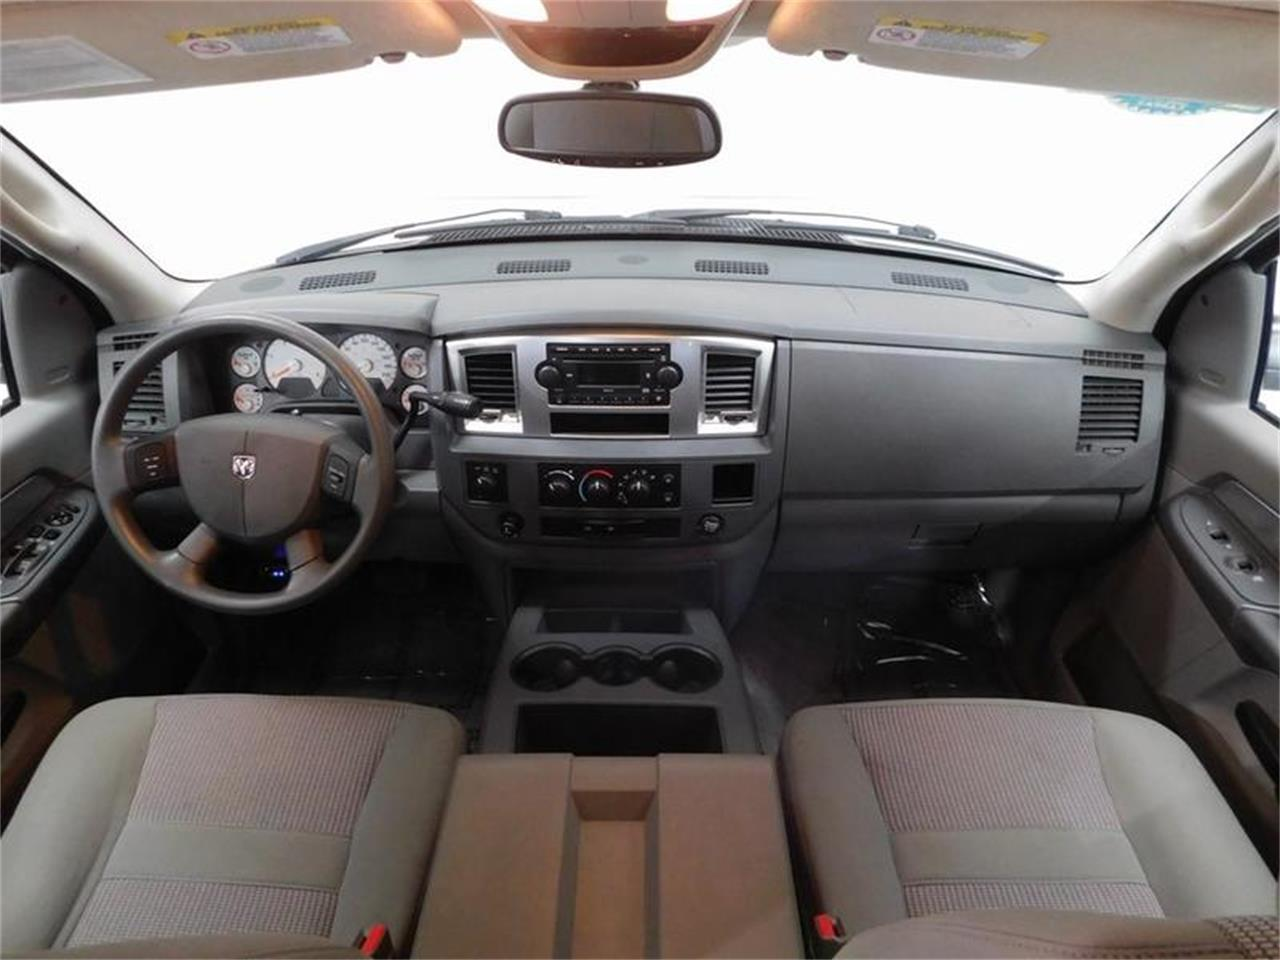 2009 Dodge Ram 3500 for sale in Hamburg, NY – photo 60